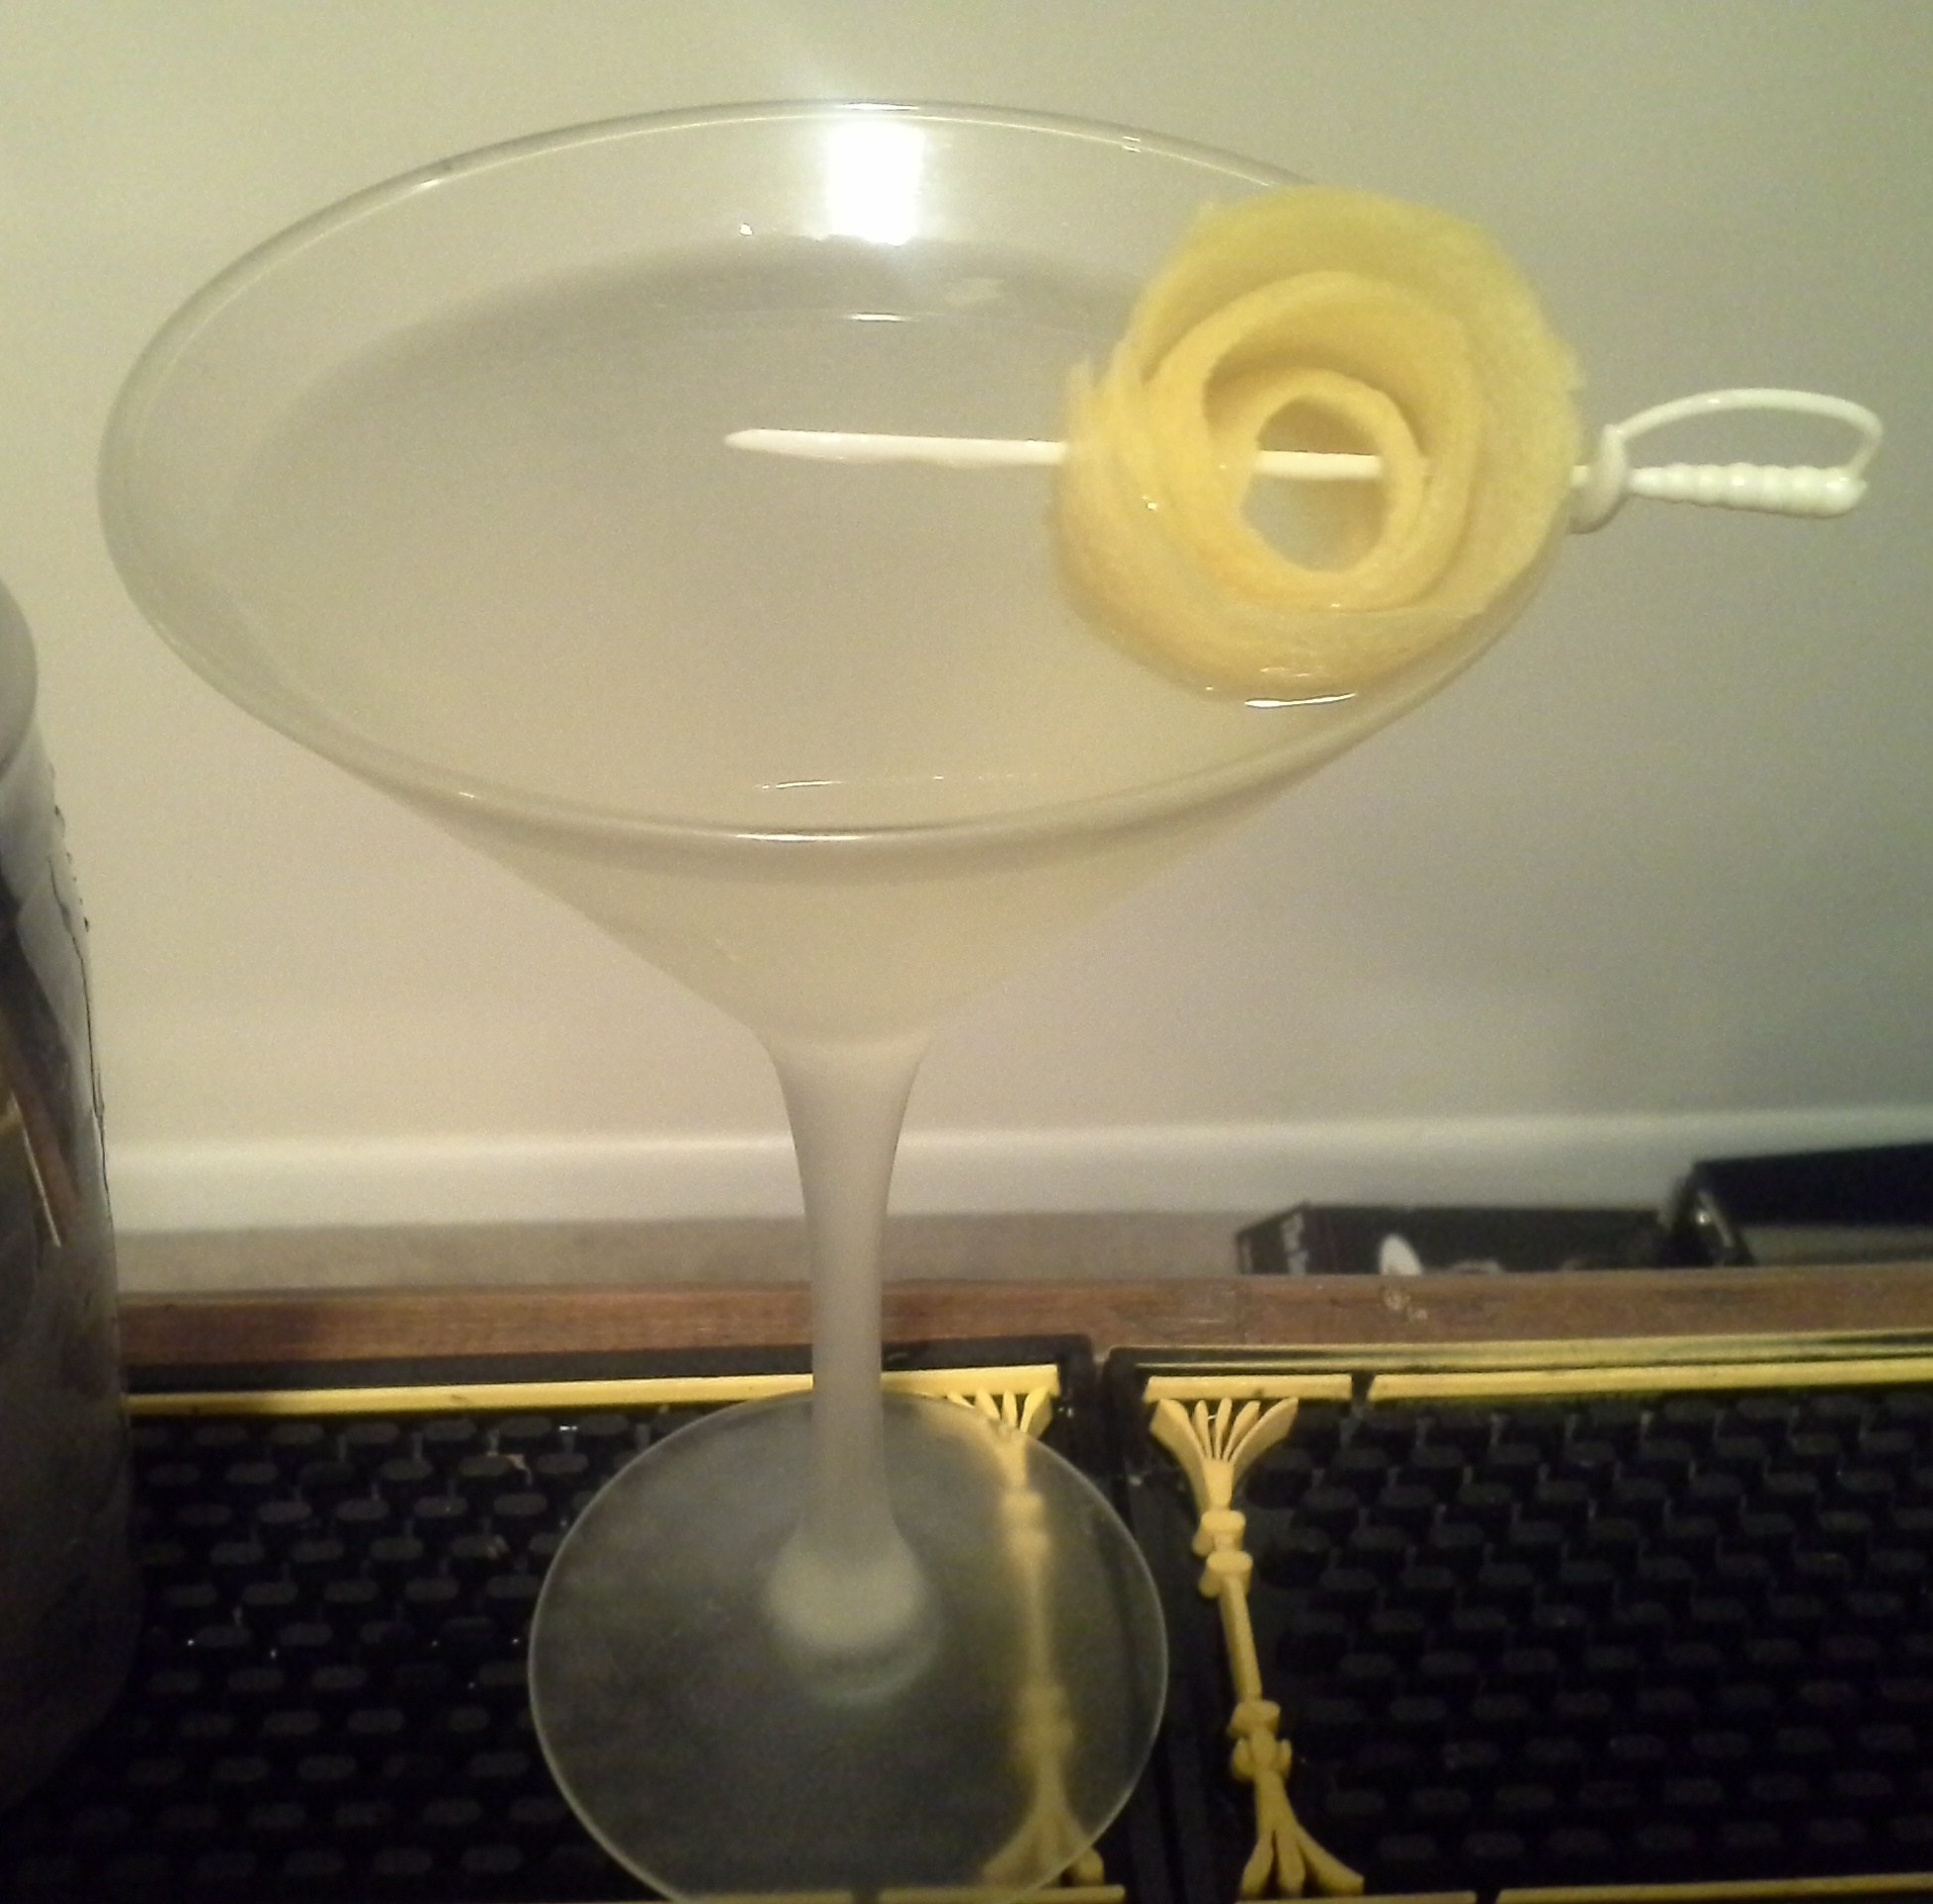 Lemondrop lemon peel rose garnish